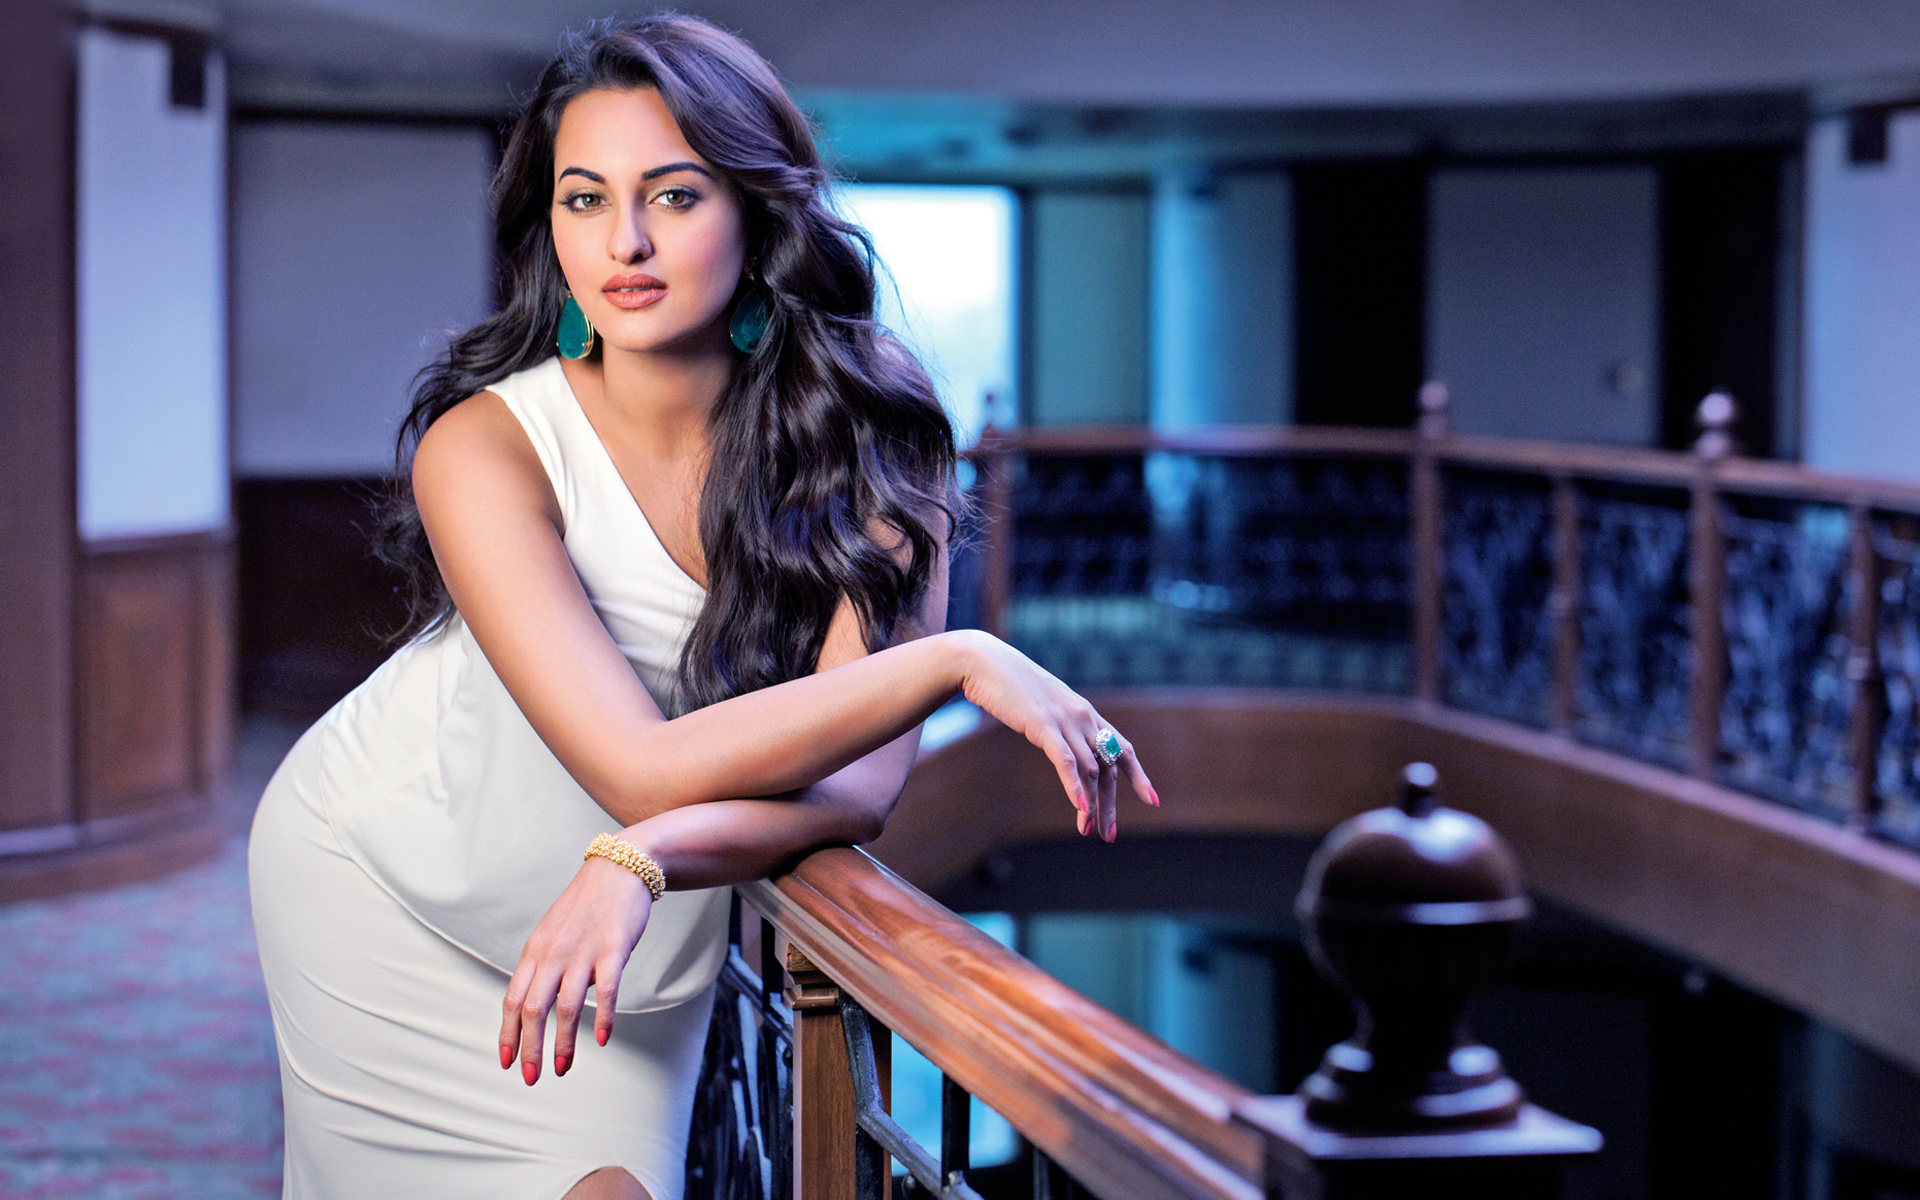 sexiest sonakshi sinha hot hd photos & wallpapers (high resolution